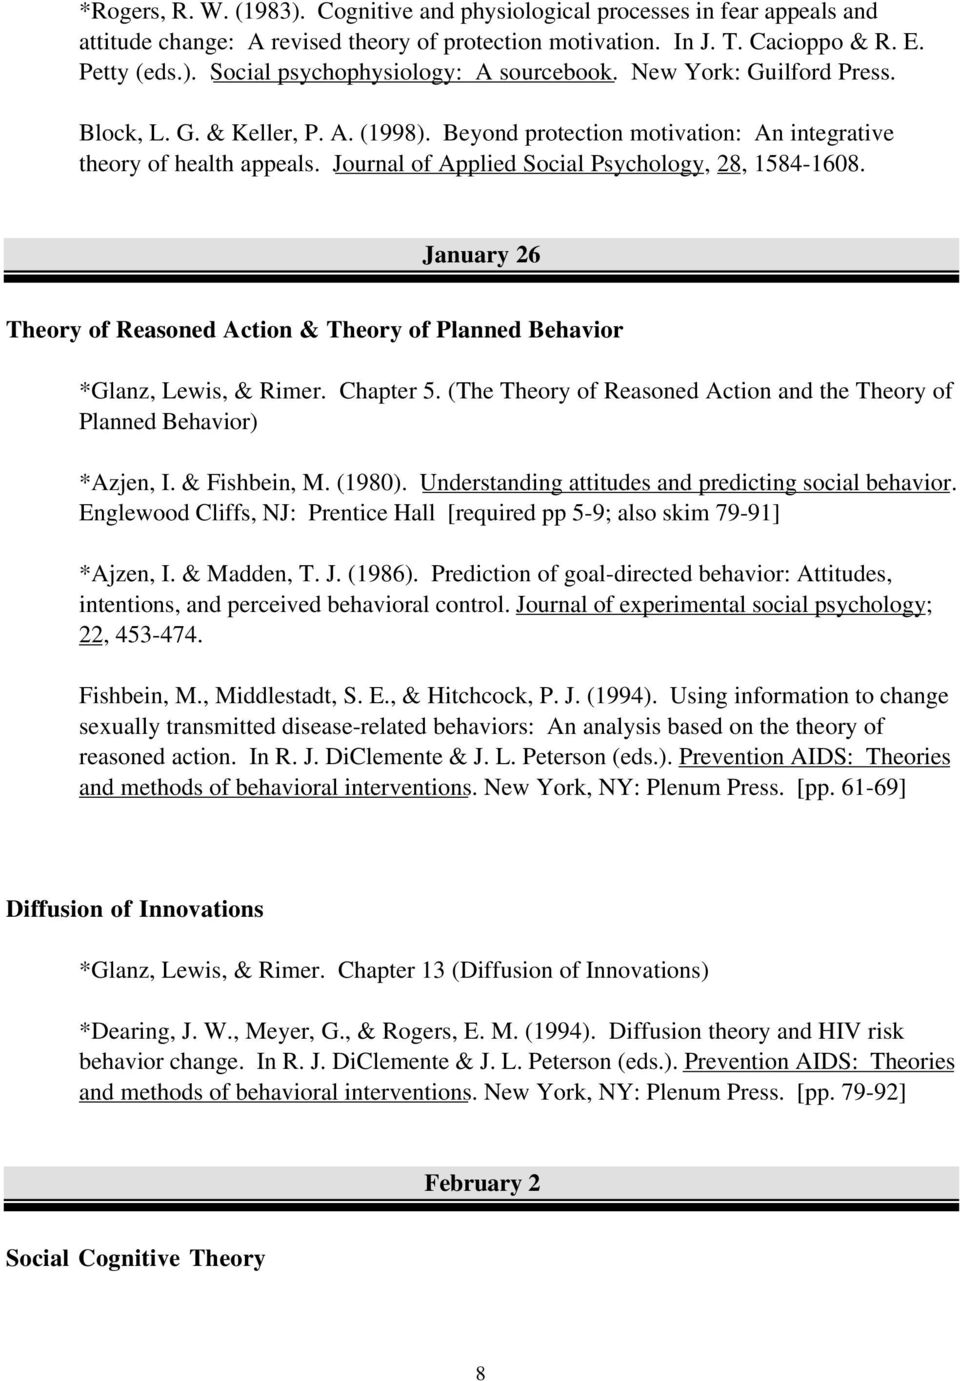 January 26 Theory of Reasoned Action & Theory of Planned Behavior *Glanz, Lewis, & Rimer. Chapter 5. (The Theory of Reasoned Action and the Theory of Planned Behavior) *Azjen, I. & Fishbein, M.